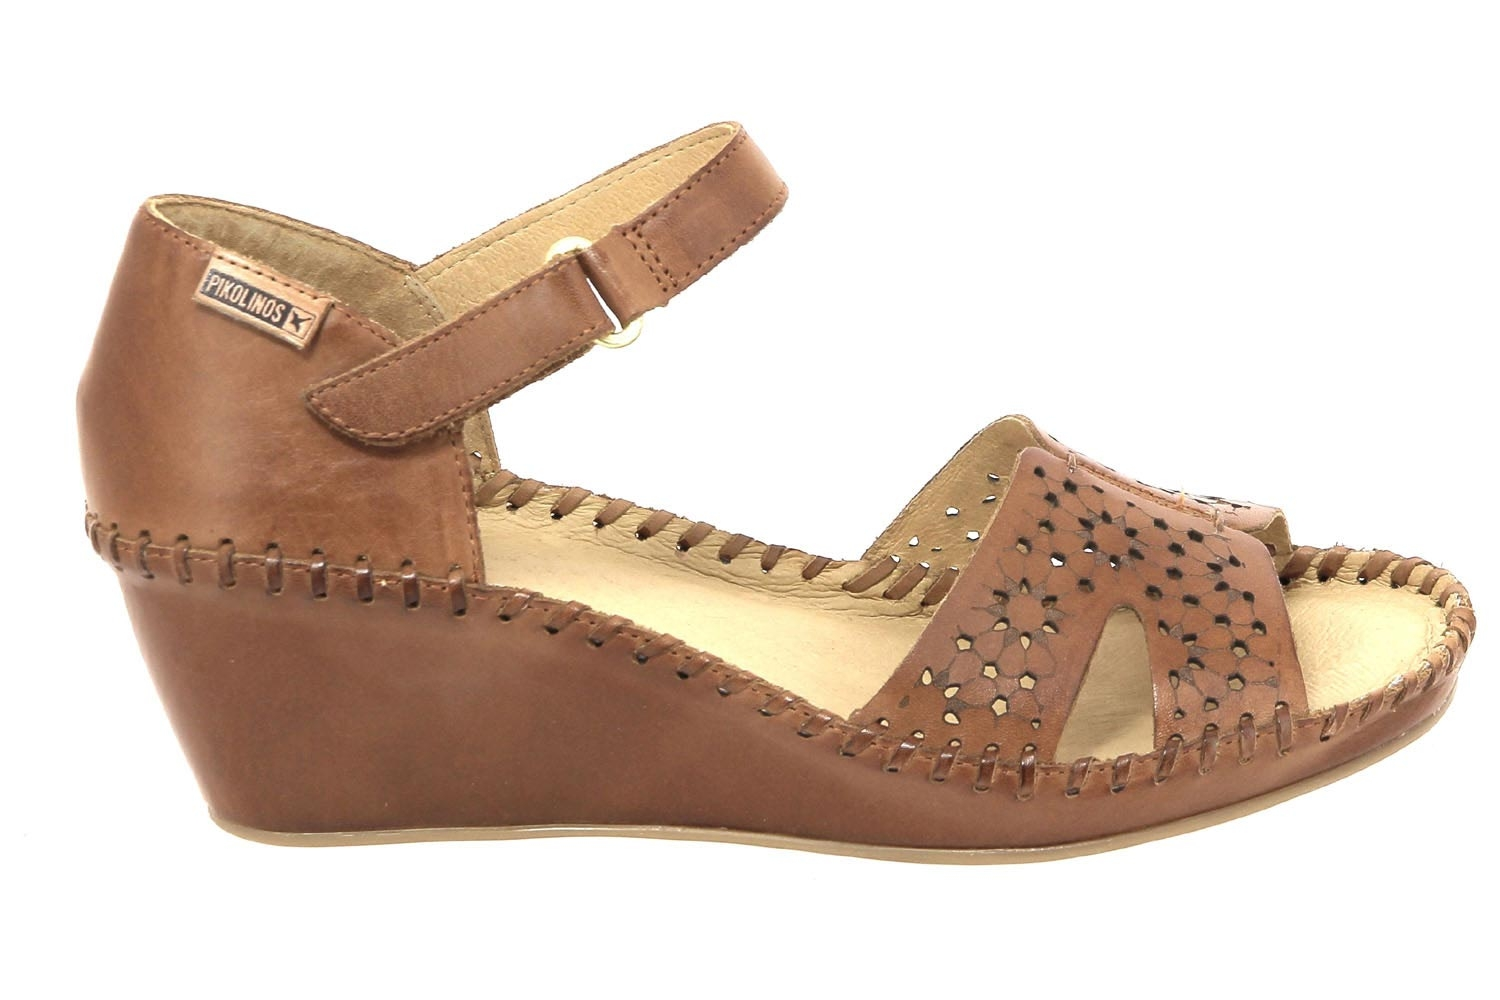 Nu Pieds Pikolinos D'ete Casual Chaussures Margarita Marron Style vmON8ny0w